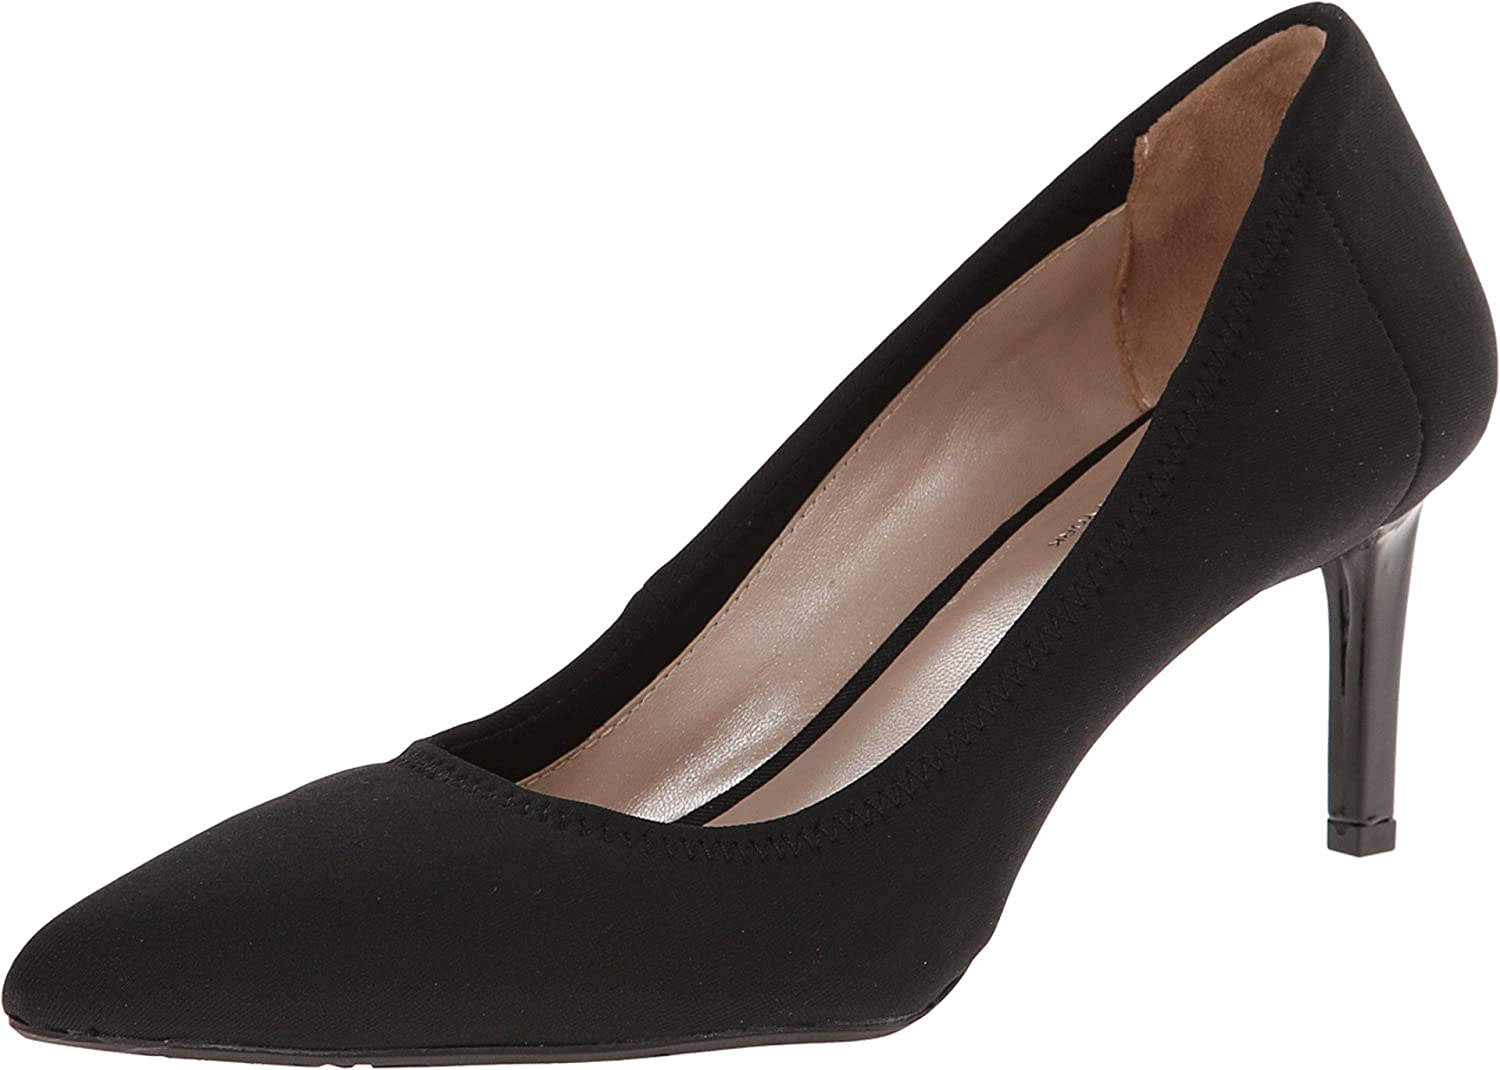 DKNY Eviey Women Pointed Toe Leather Heels Black Size 9.0